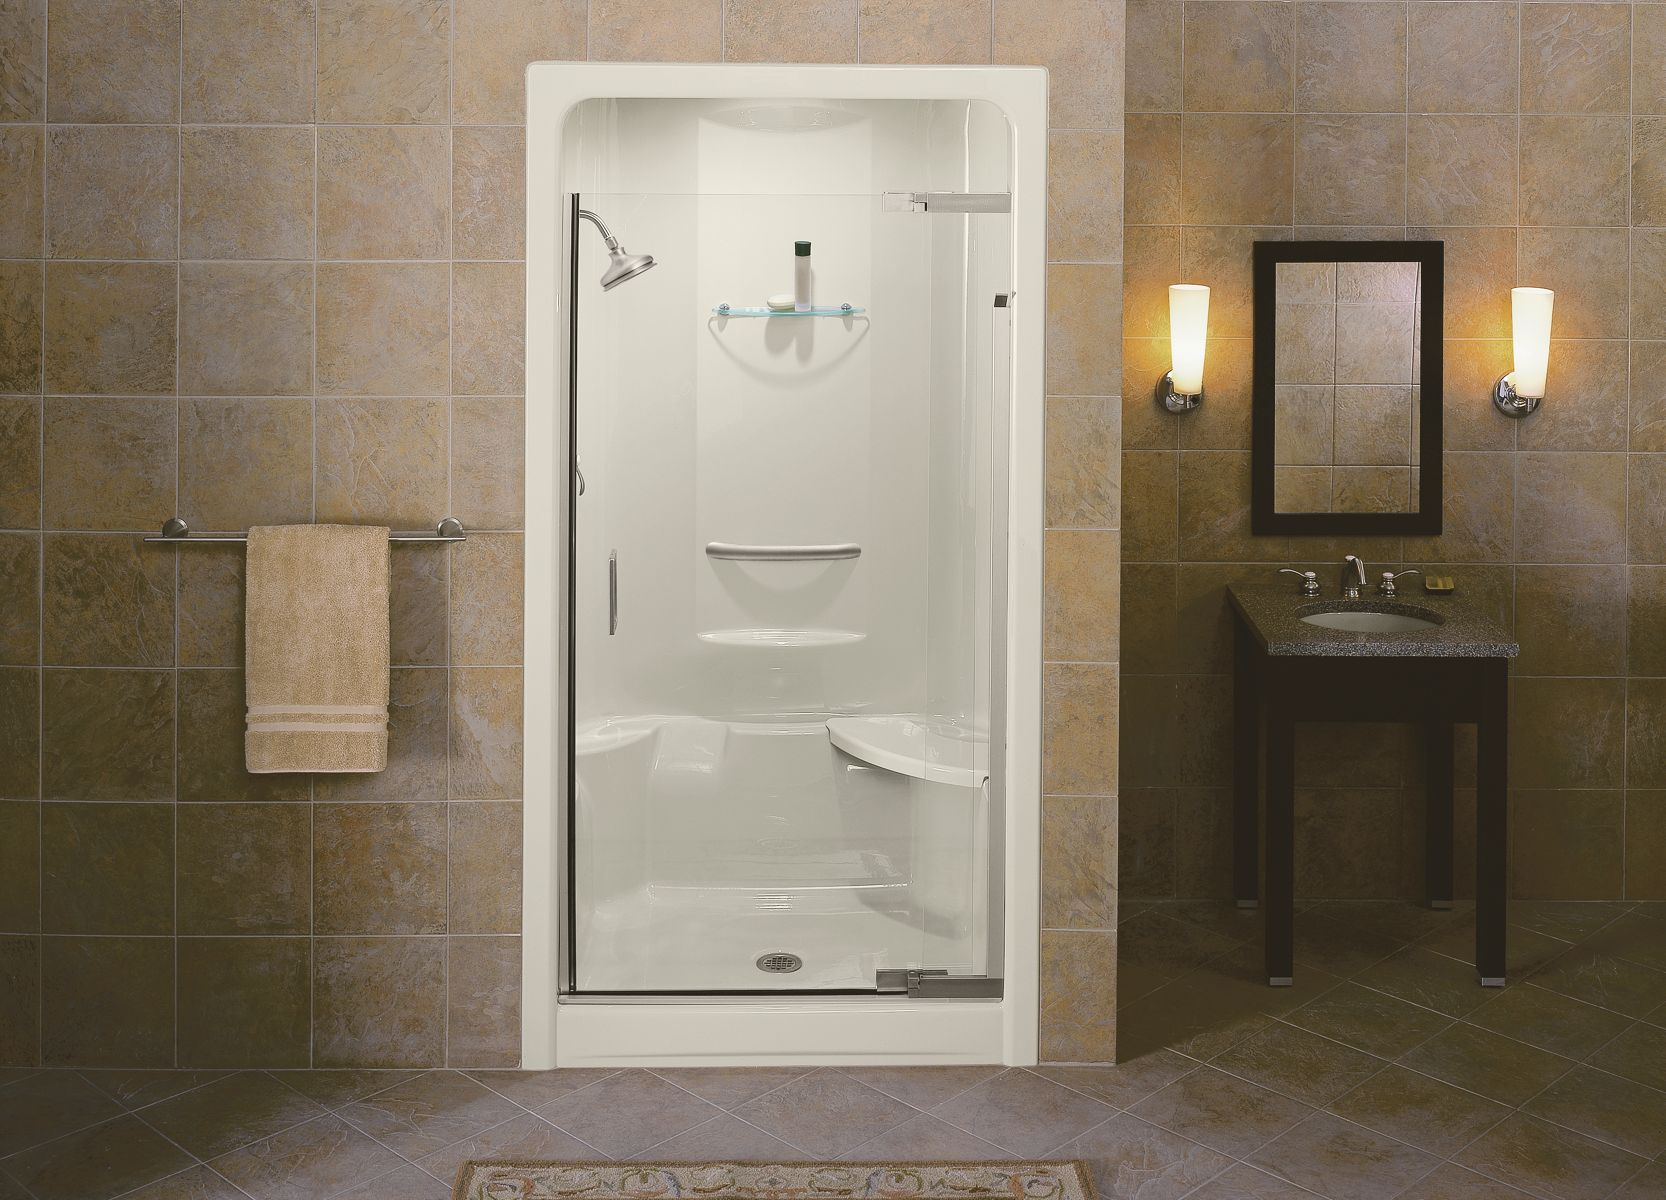 Bathroom Handicap Stalls ada compliant products | kohler